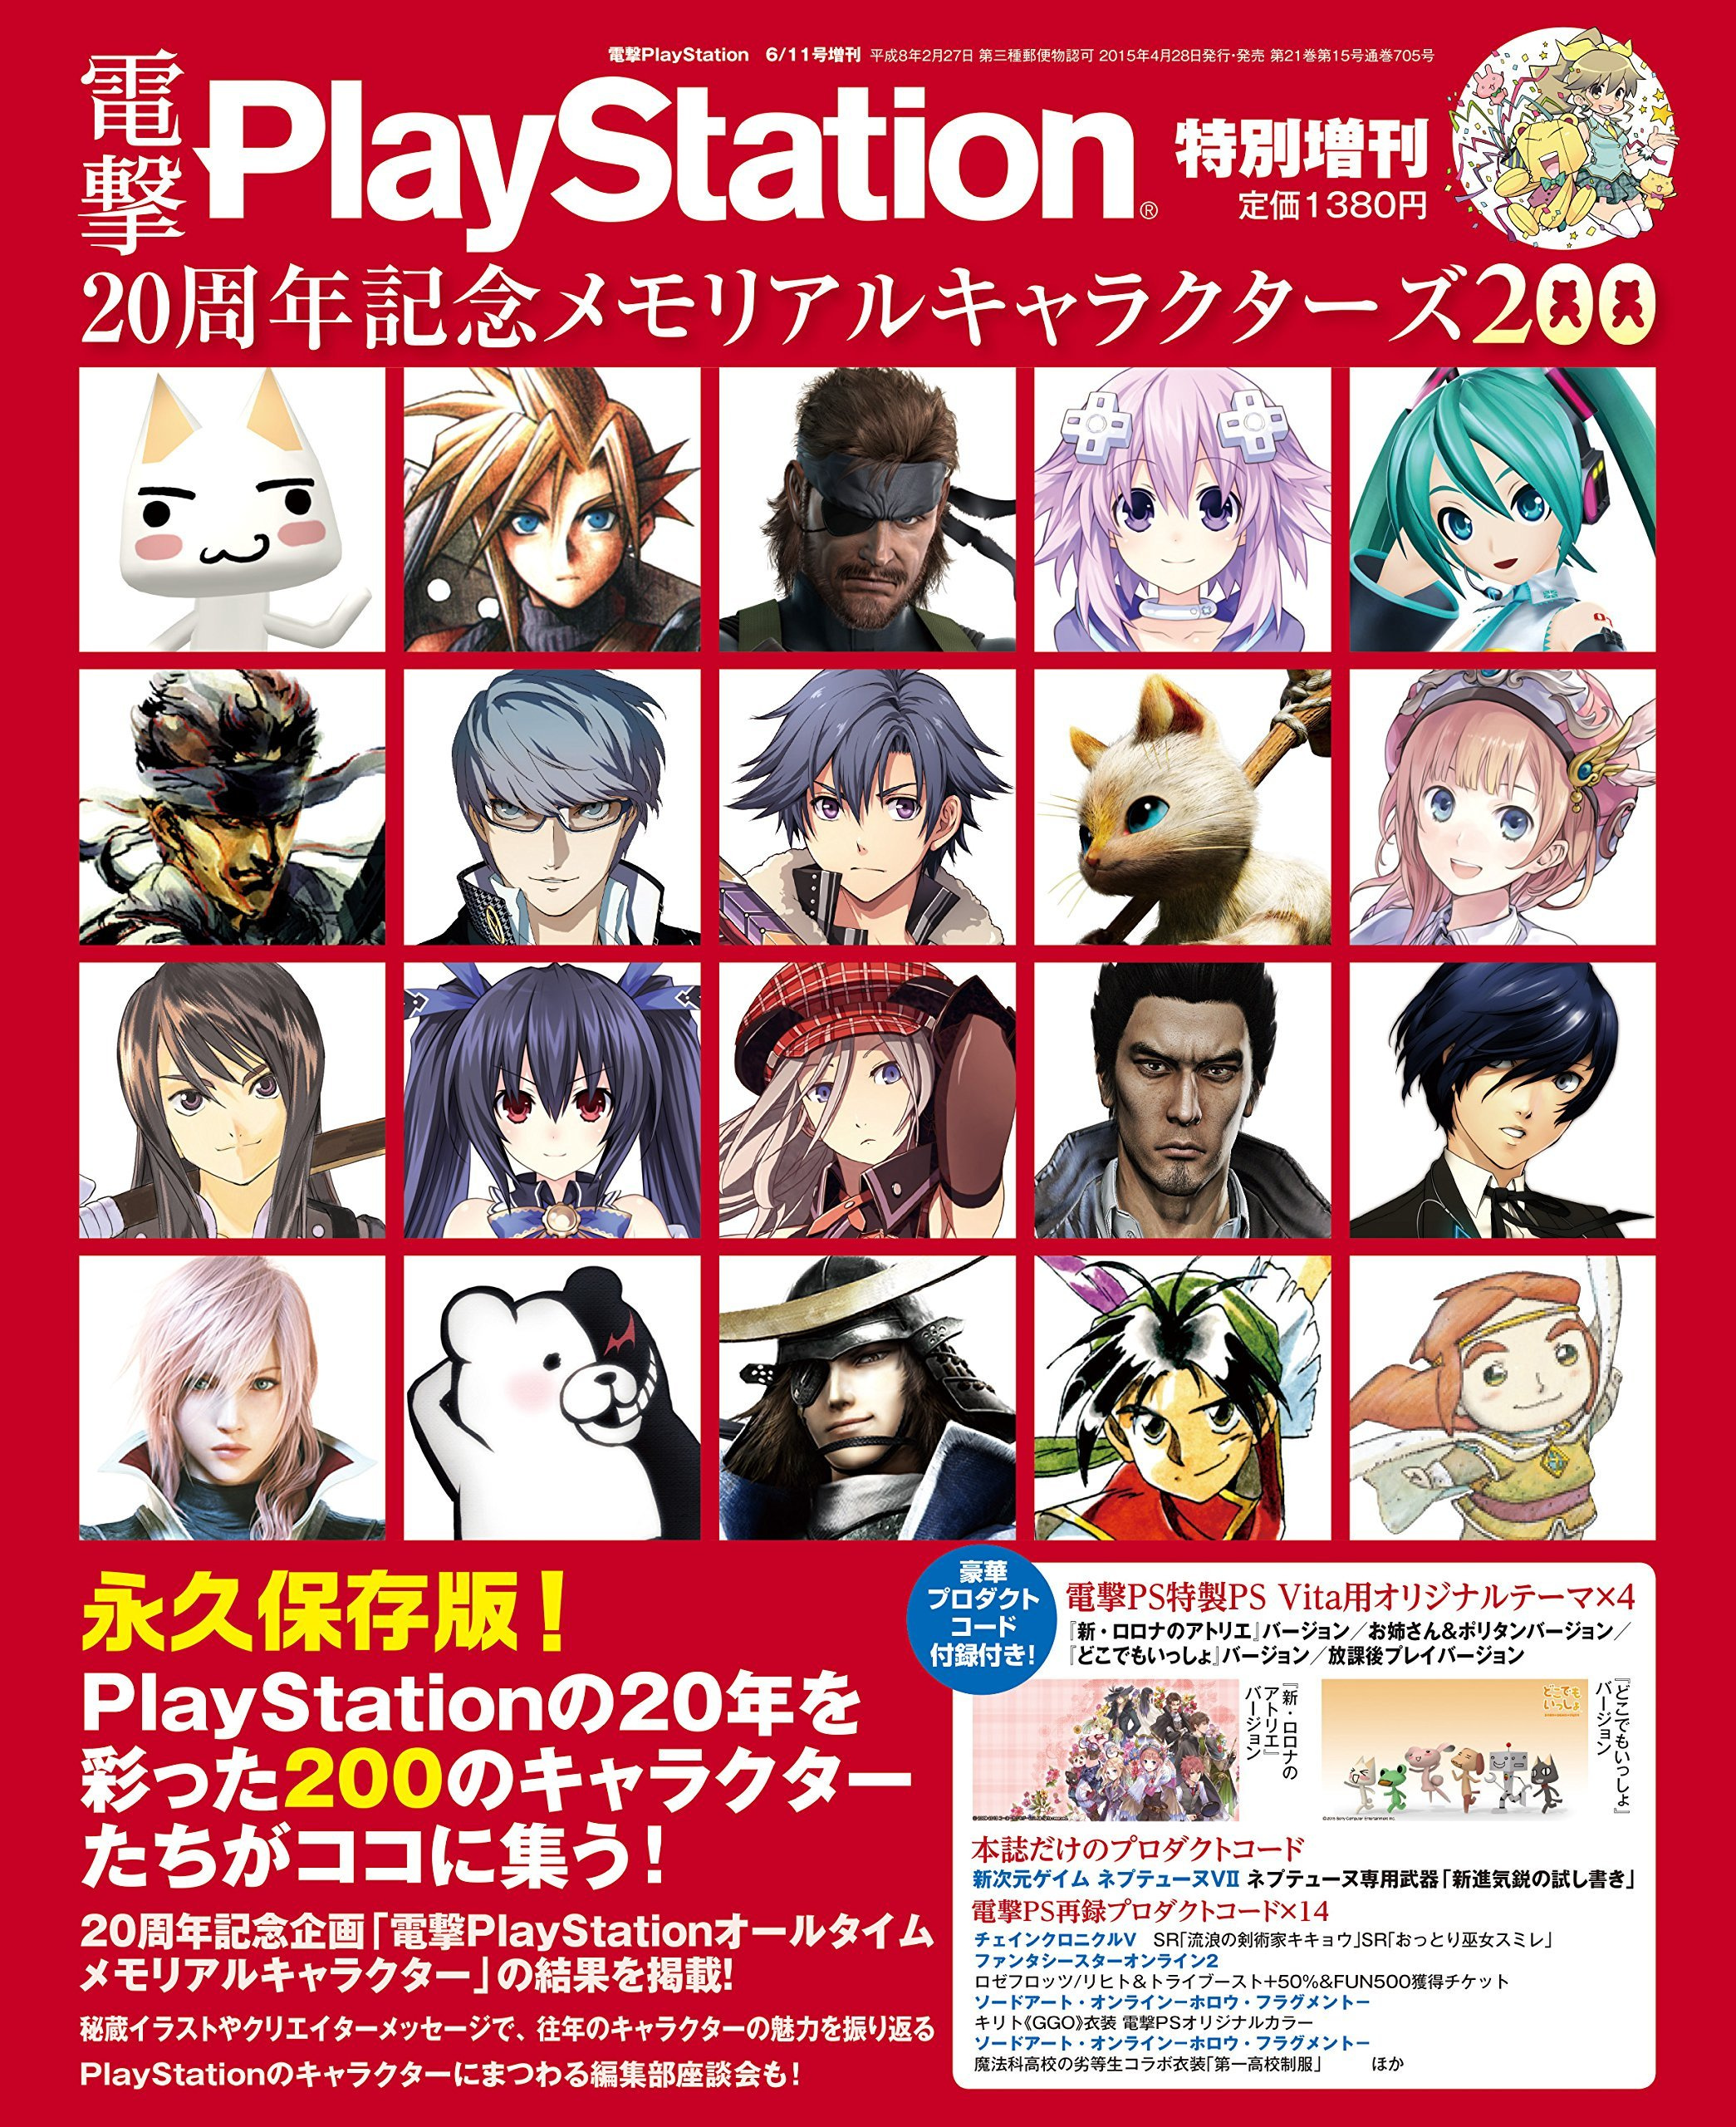 Dengeki PlayStation 20th Anniversary Memorial Characters 200 (June 11, 2015)